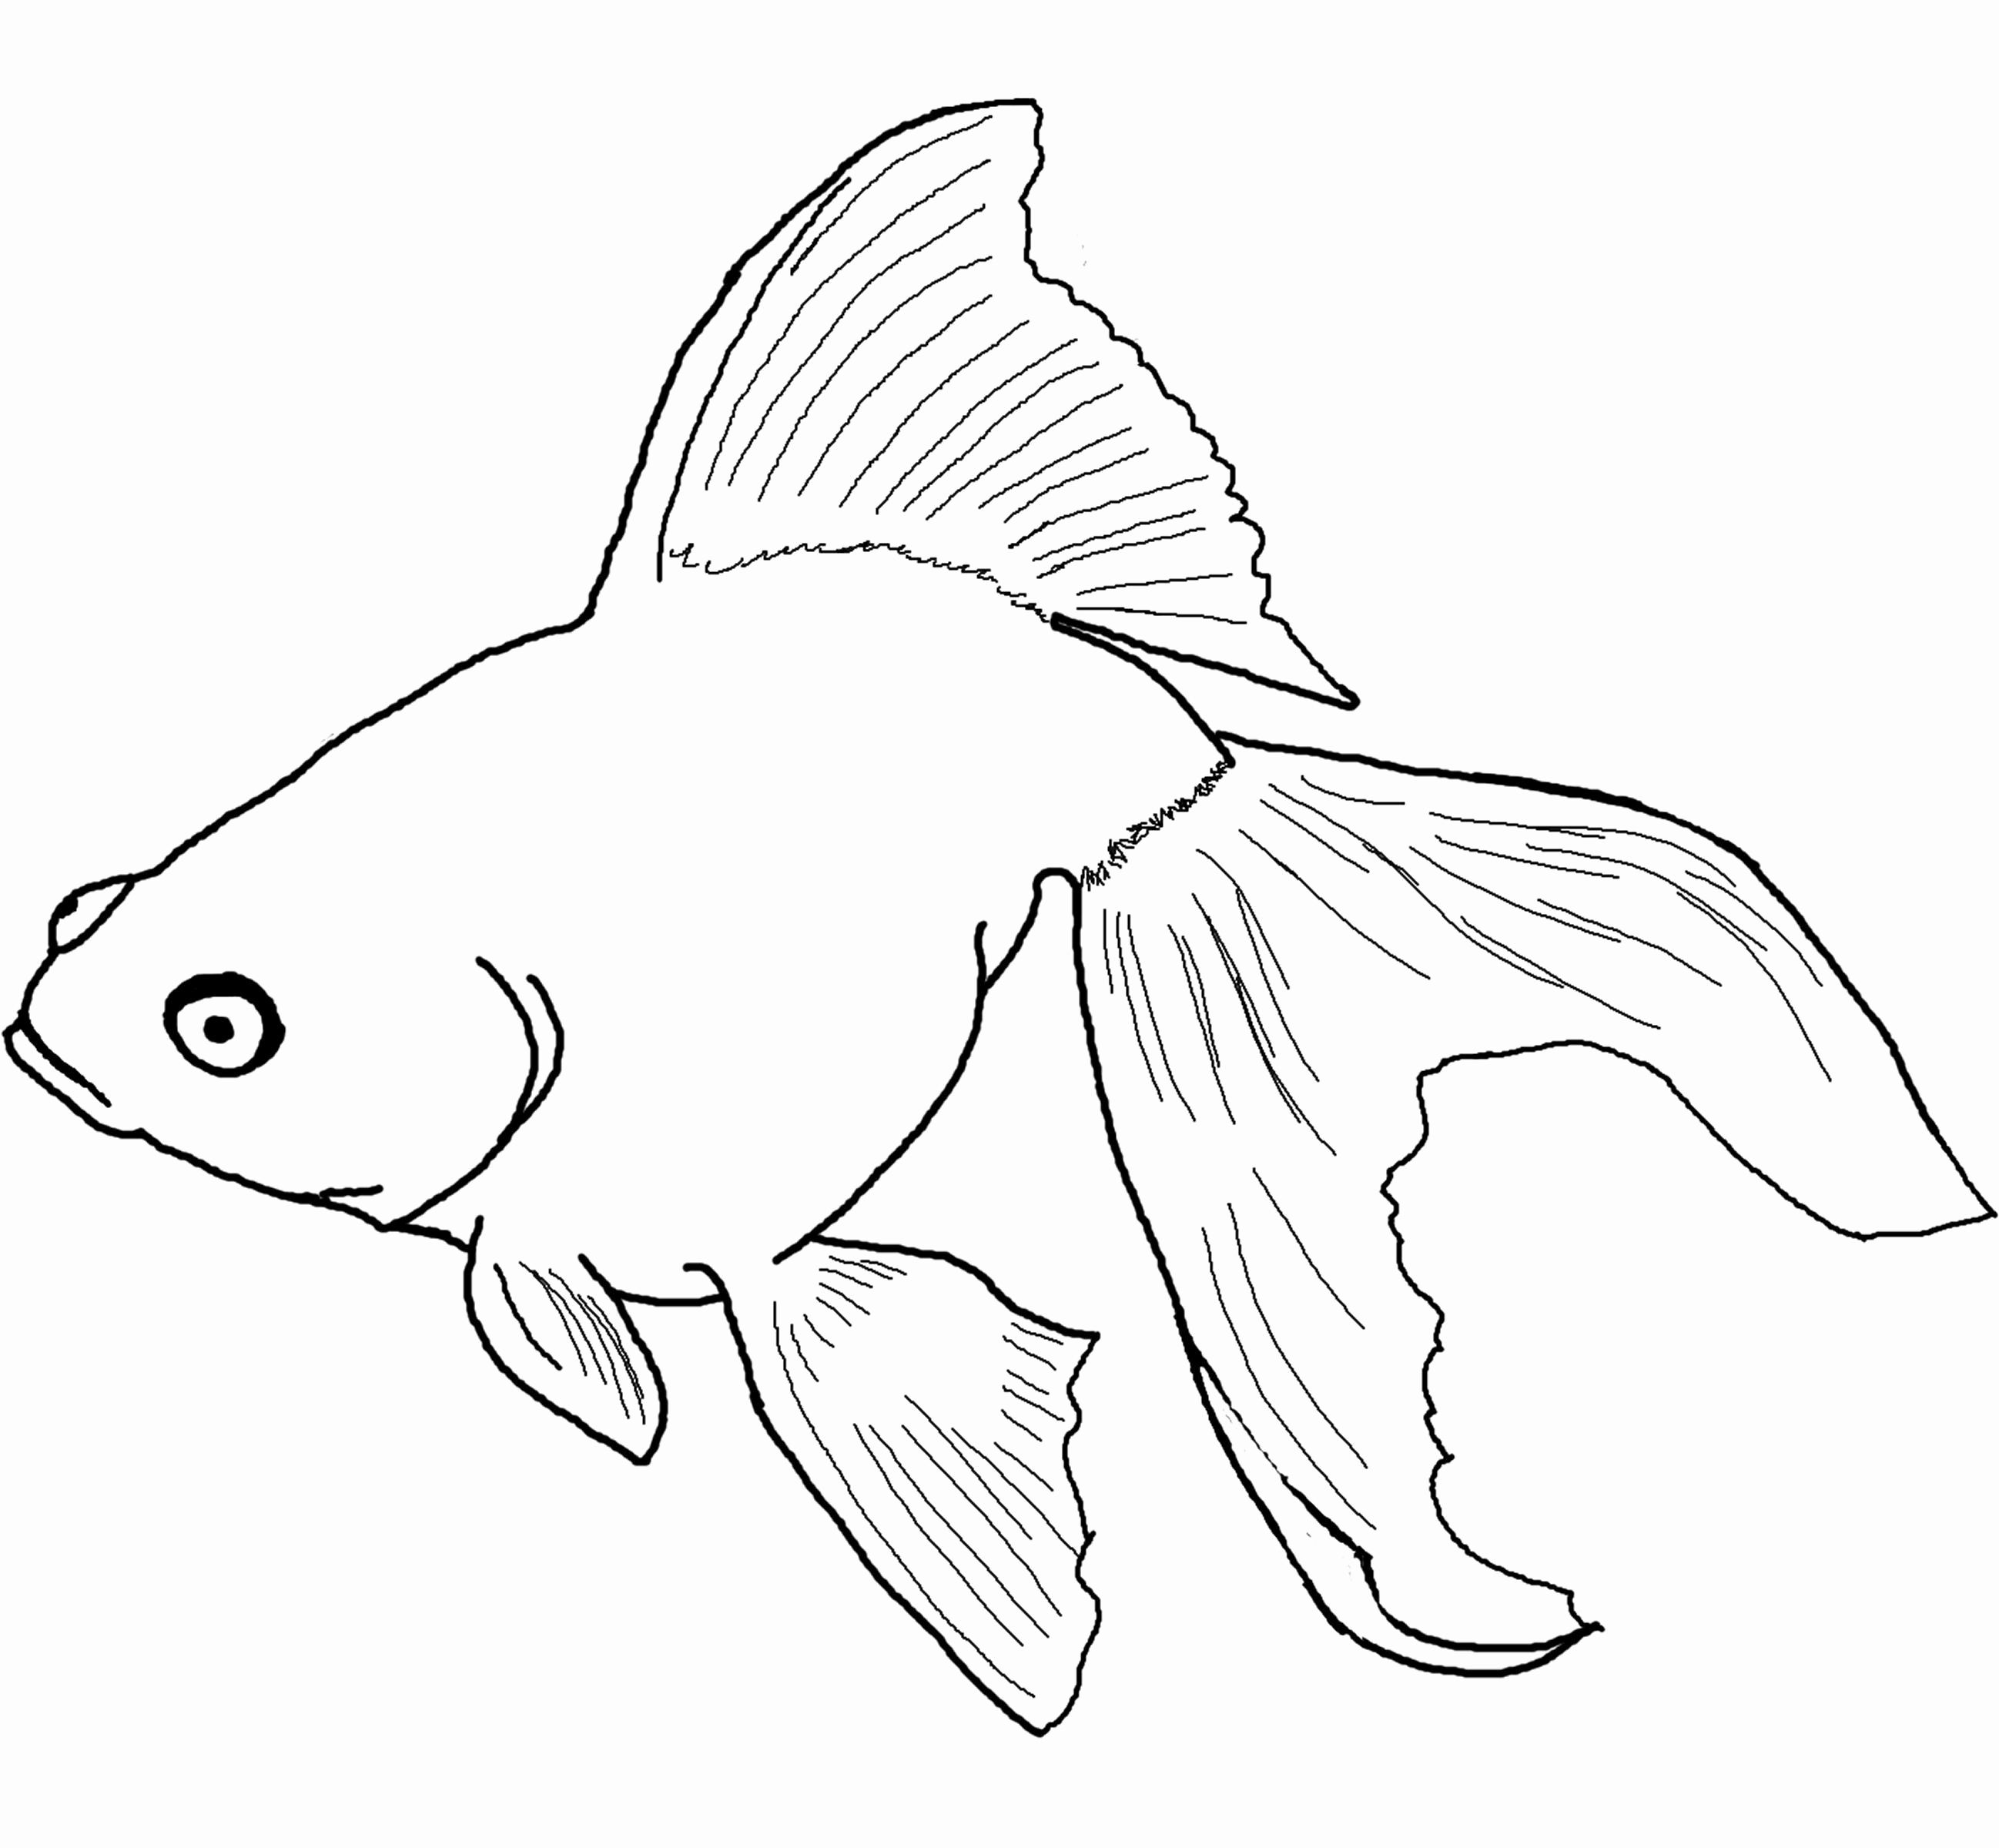 2596x2400 Rainbow Trout Coloring Pages Fish Coloring Pages For Kids